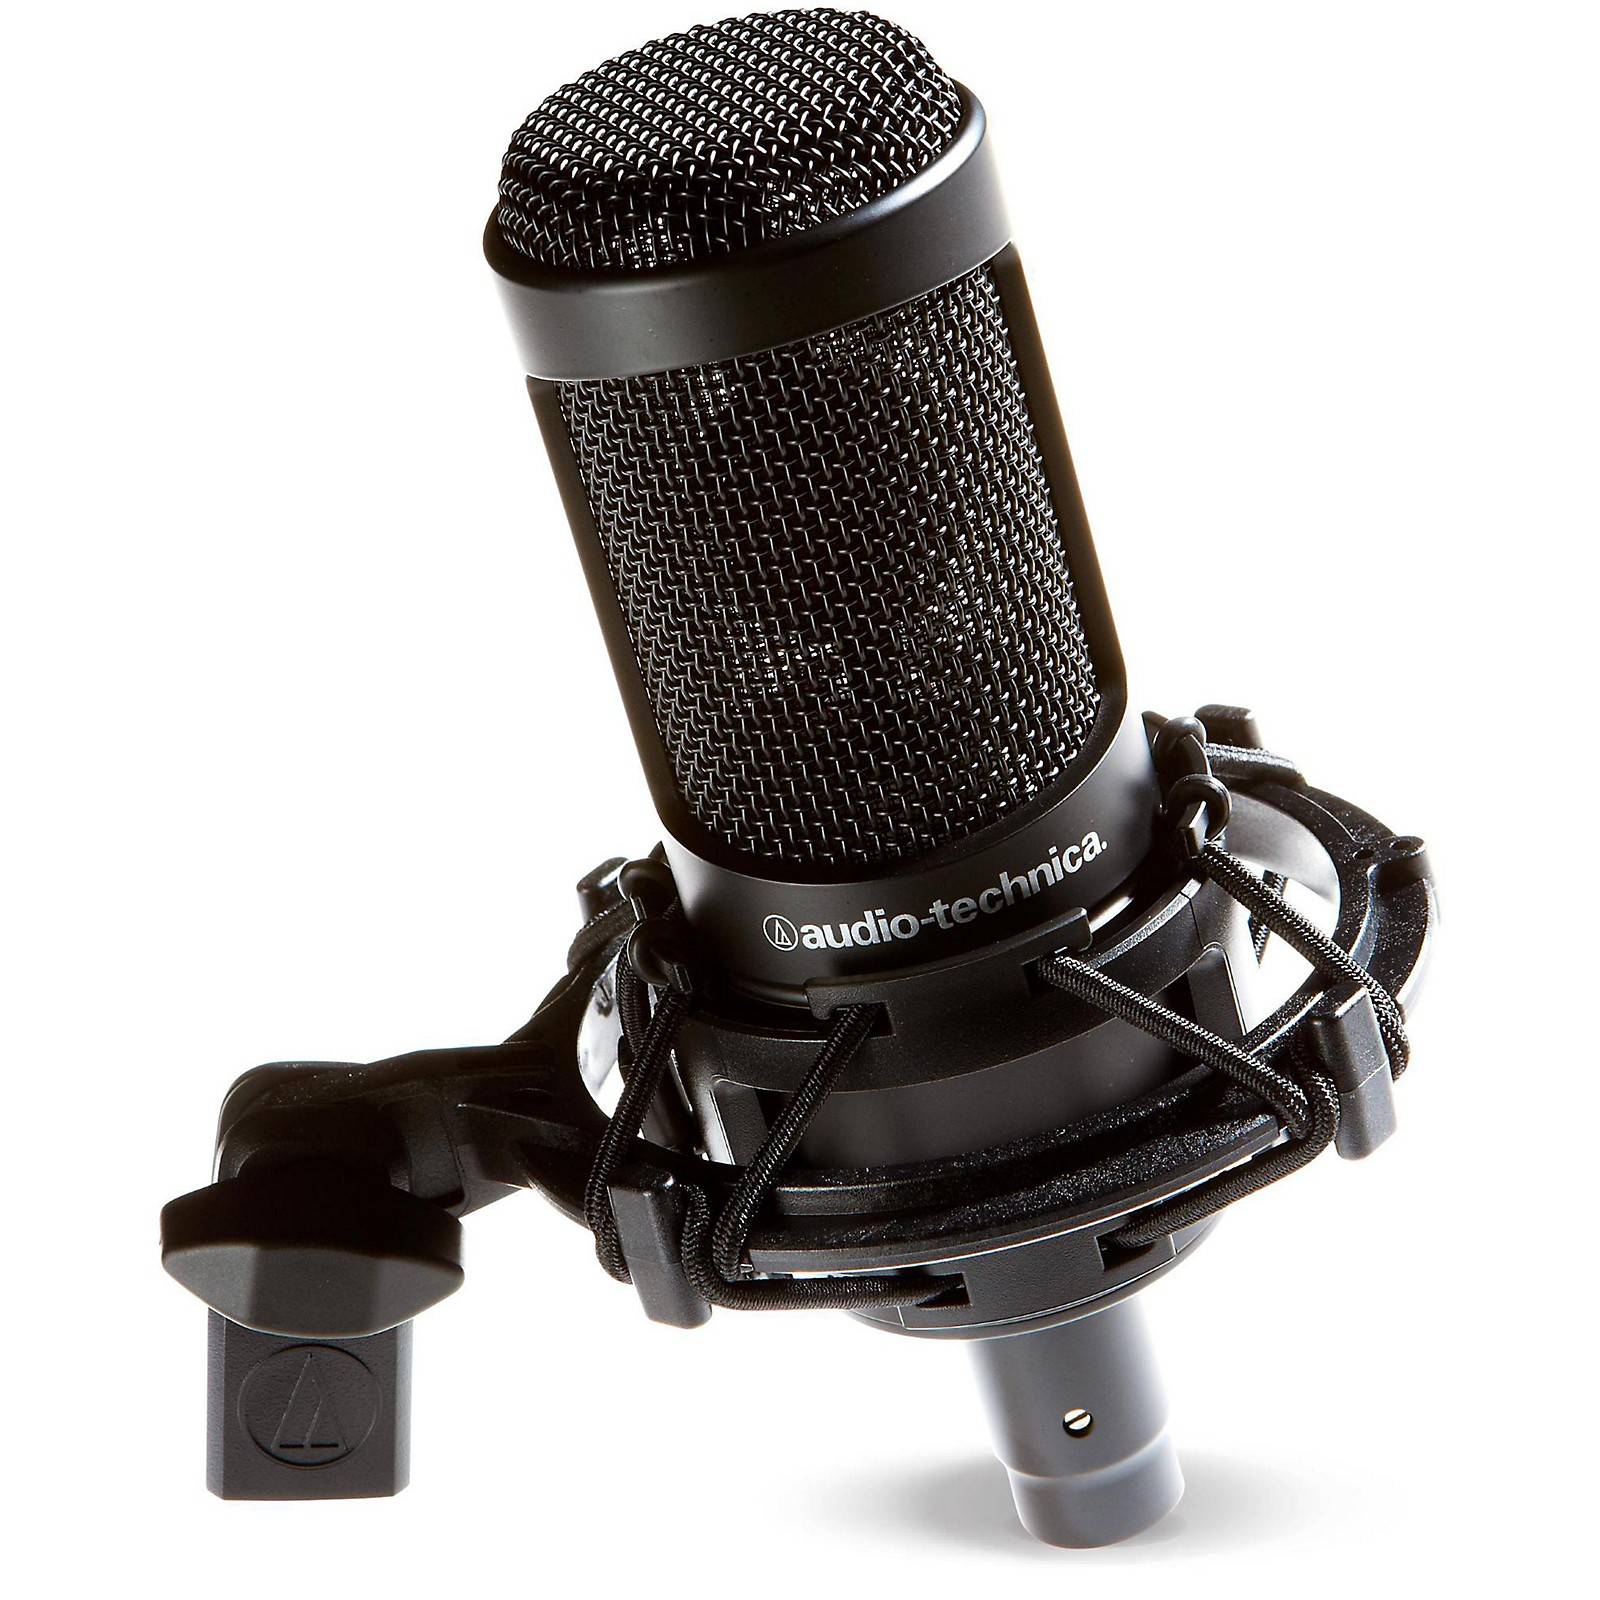 mic-thu-am-at2050-audio-technica-2